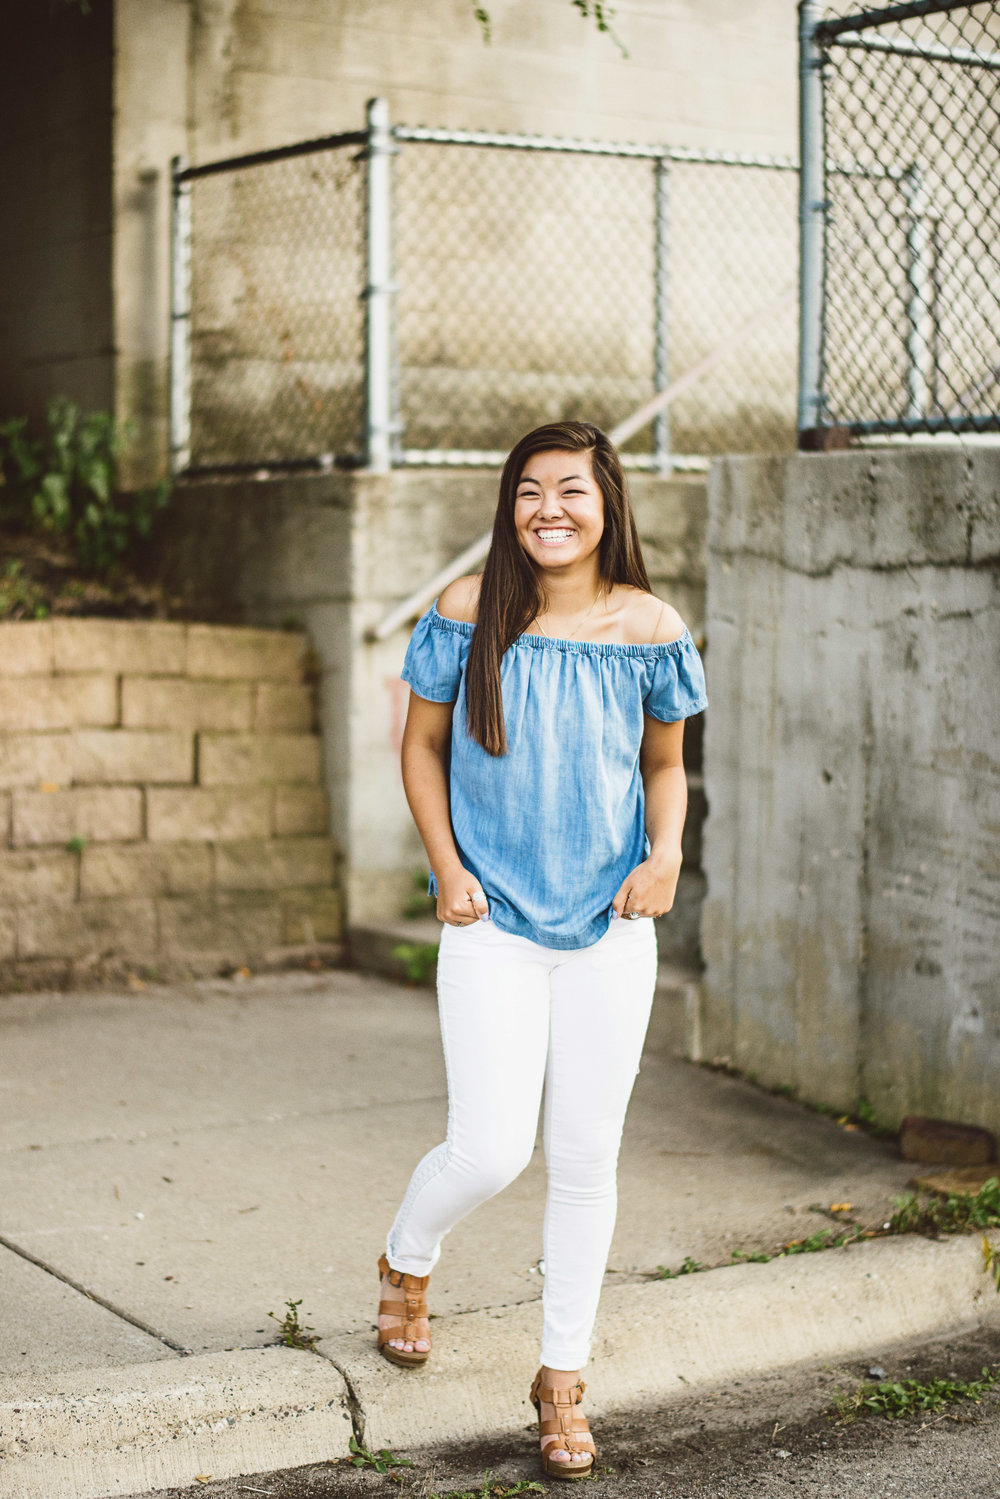 julia_senior_photos_north_loop_minneapolis_lucas_botz_photography_124.jpg